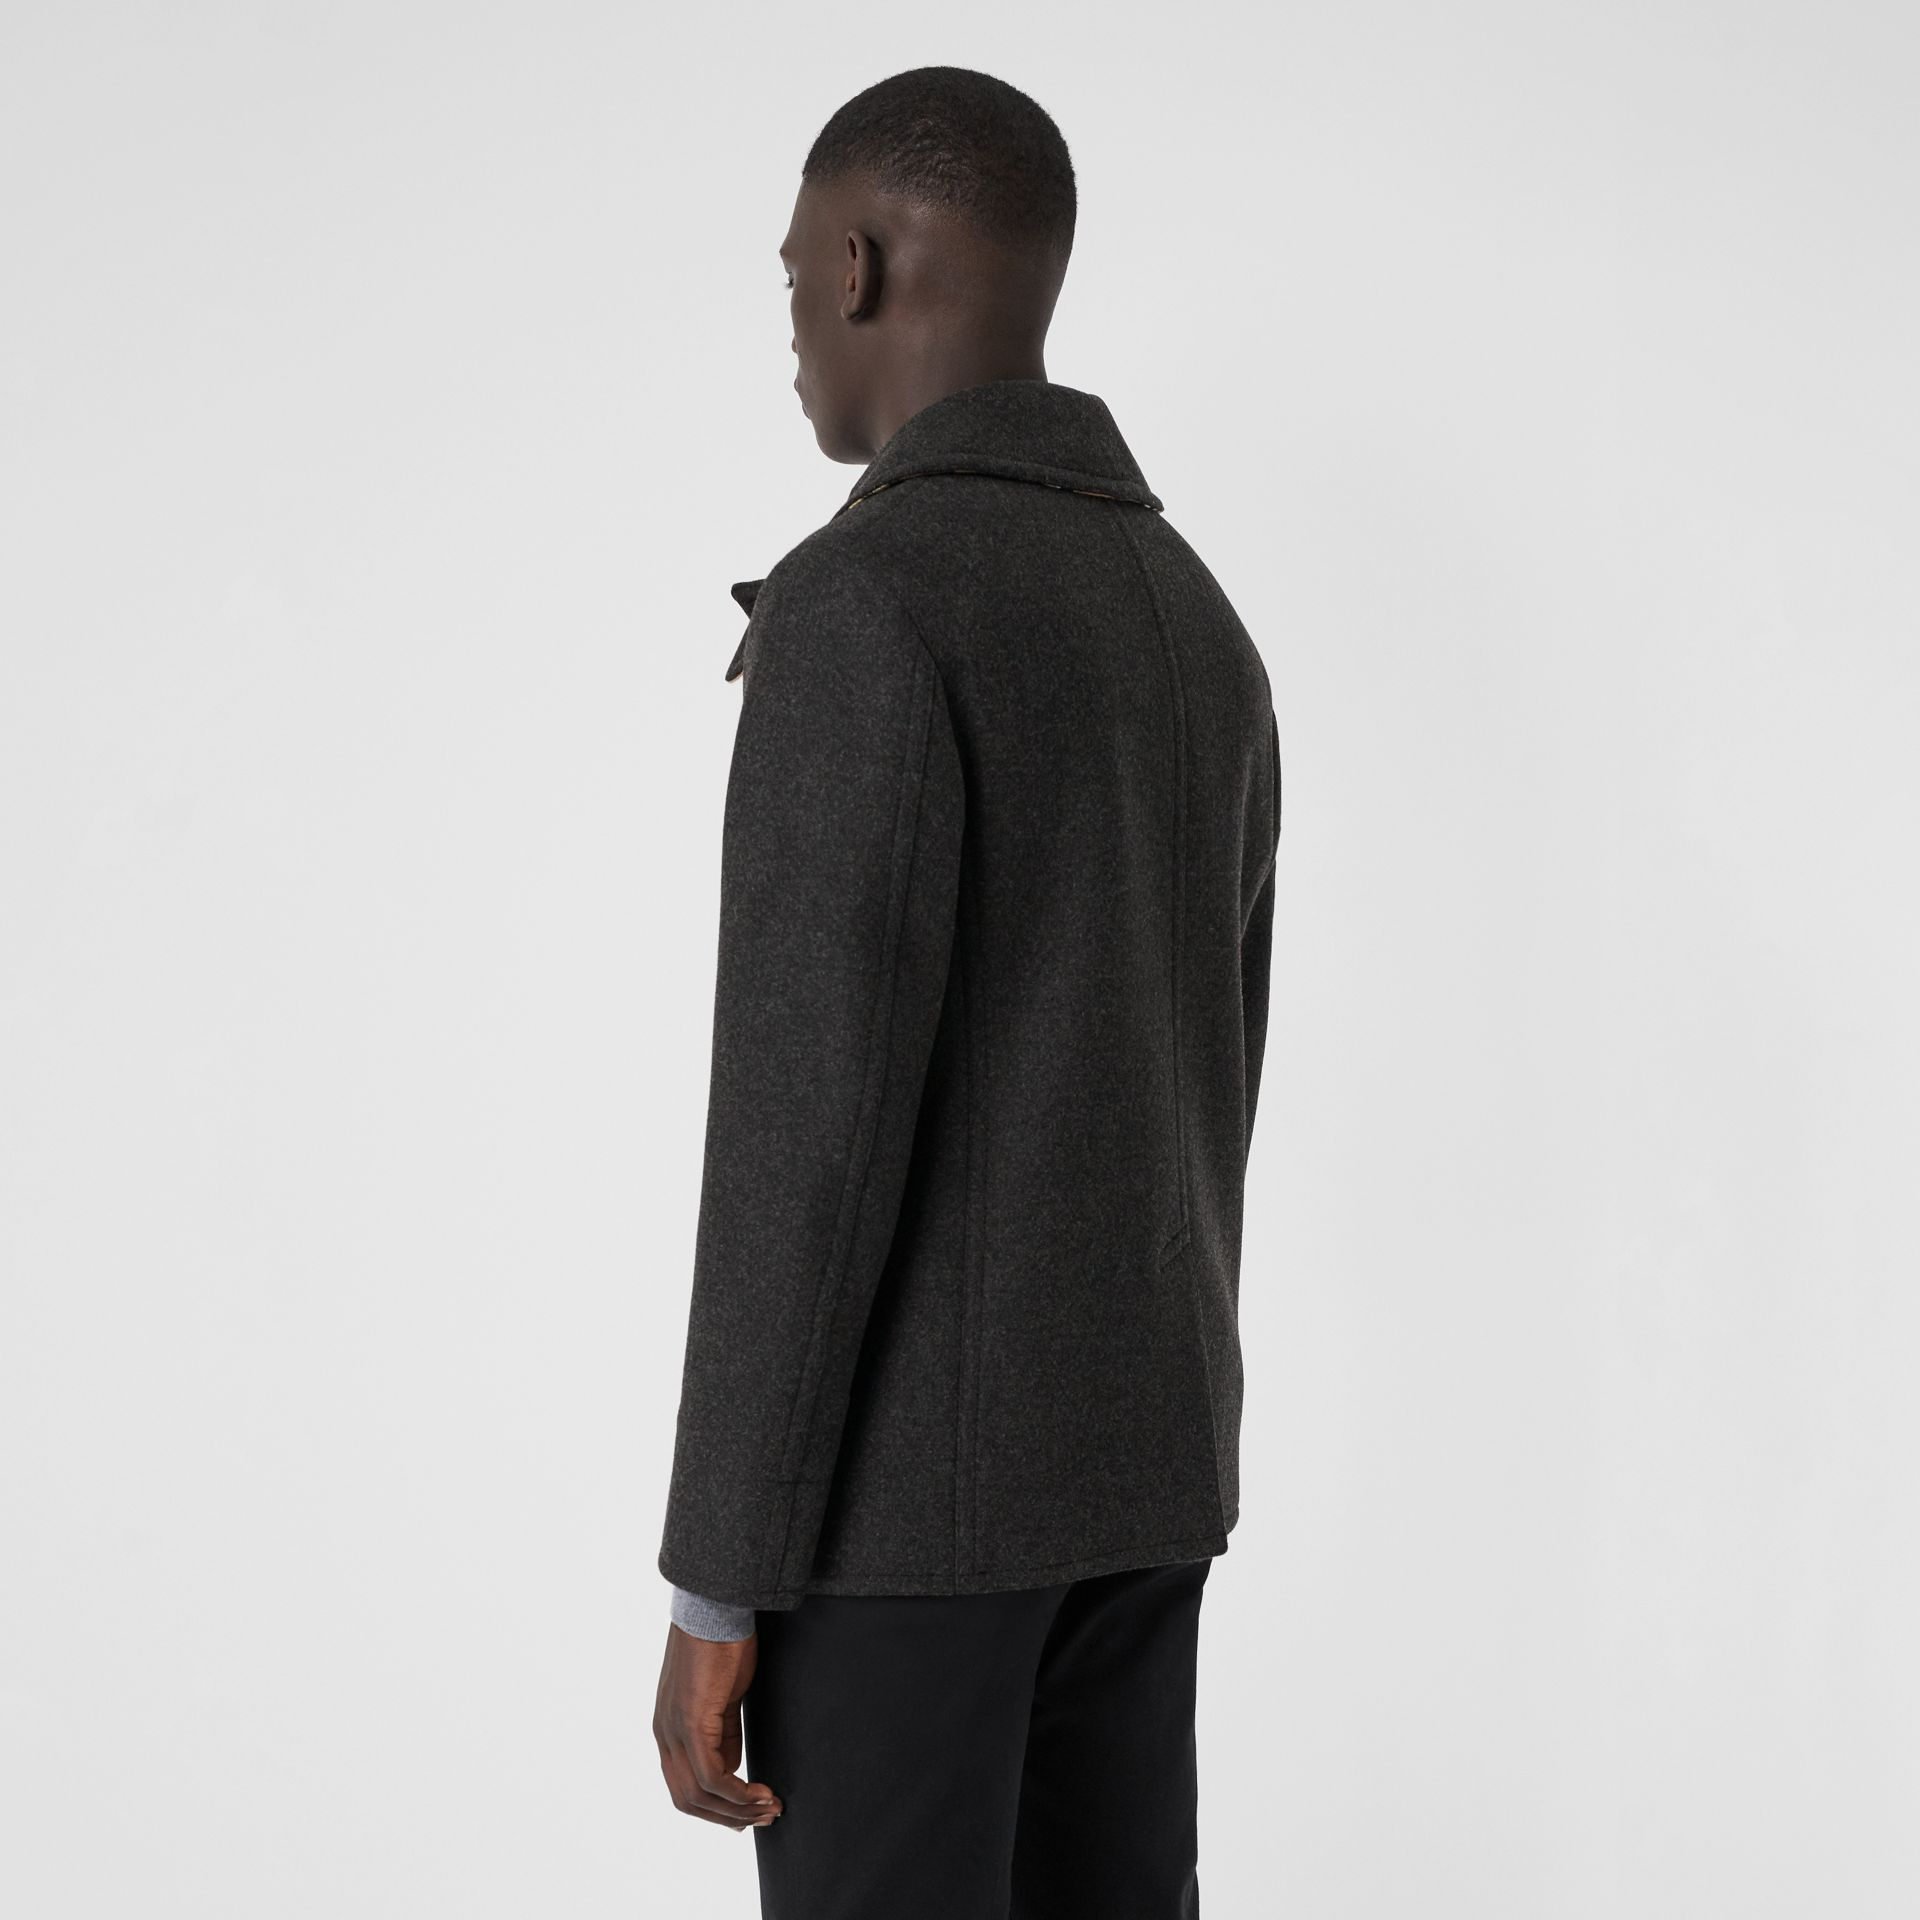 Wool Blend Pea Coat in Dark Charcoal Melange - Men | Burberry - gallery image 2